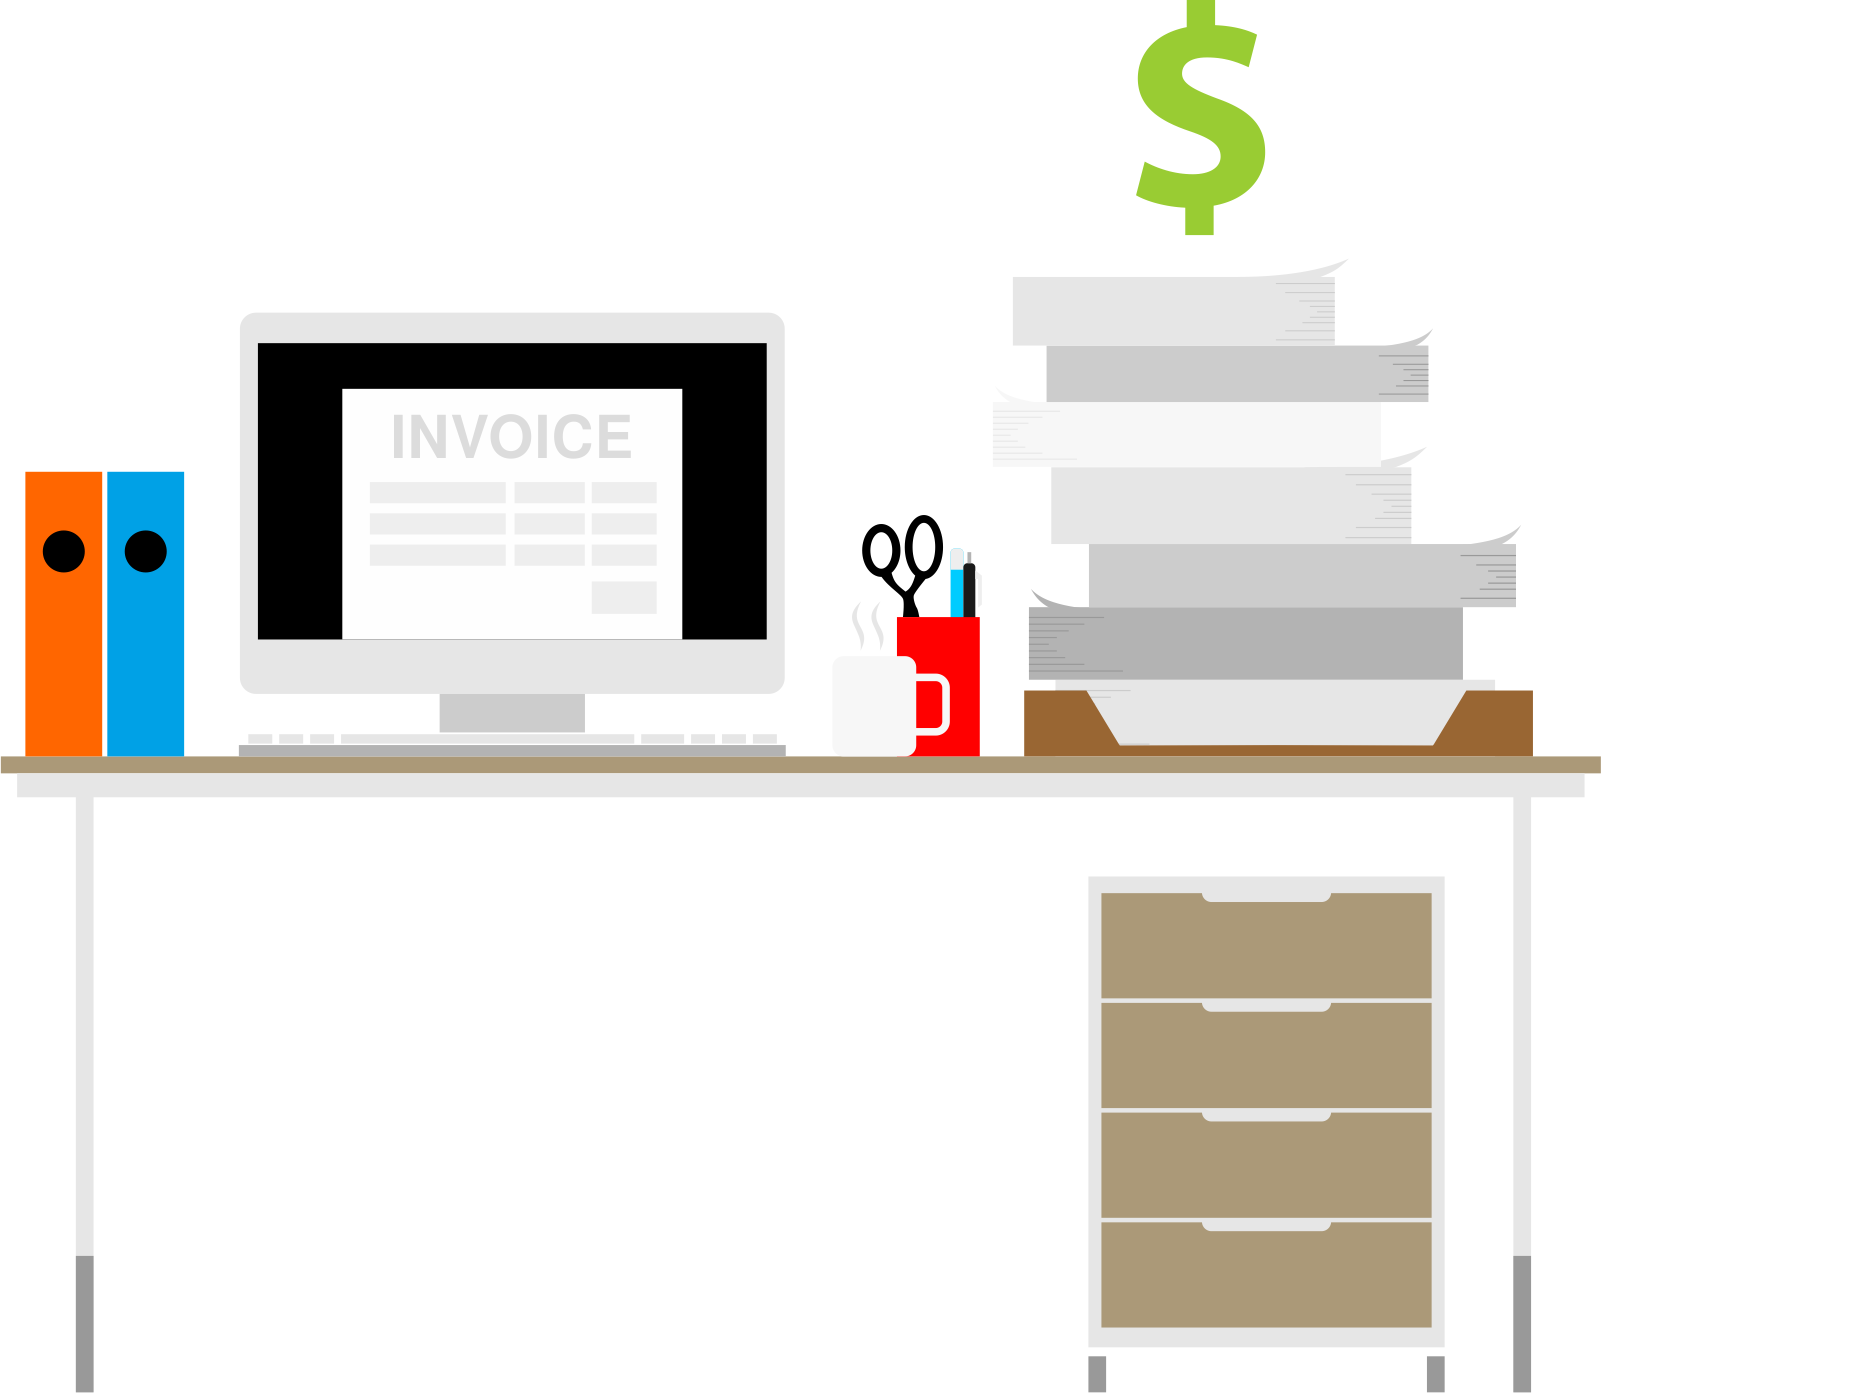 Invoices piling up? Contact a factoring company for the solution